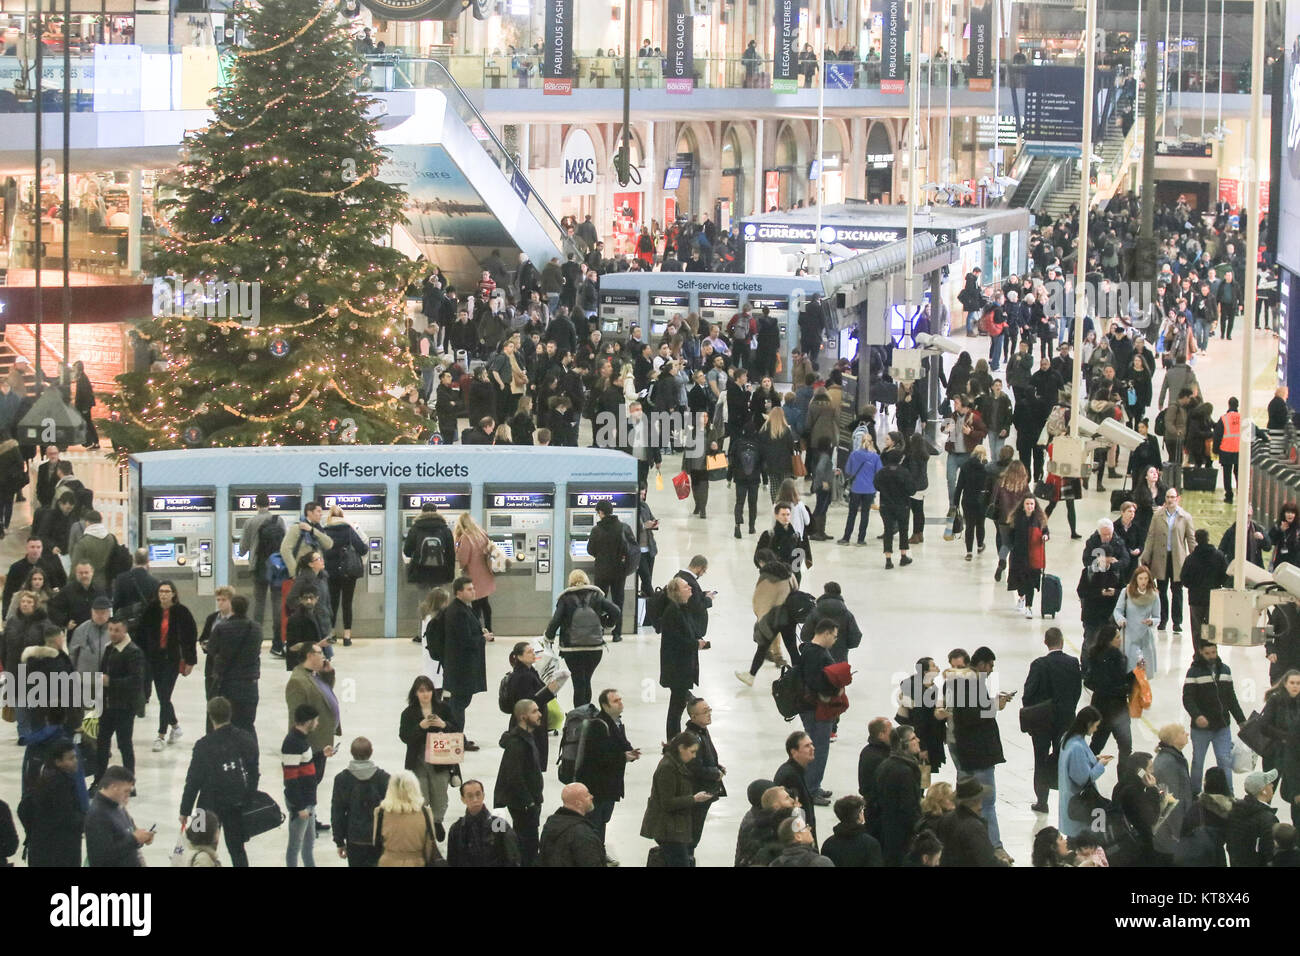 London, UK. 22nd Dec, 2017. Thousands of commuters pack the concourse at Waterloo station to prepare to go home - Stock Image